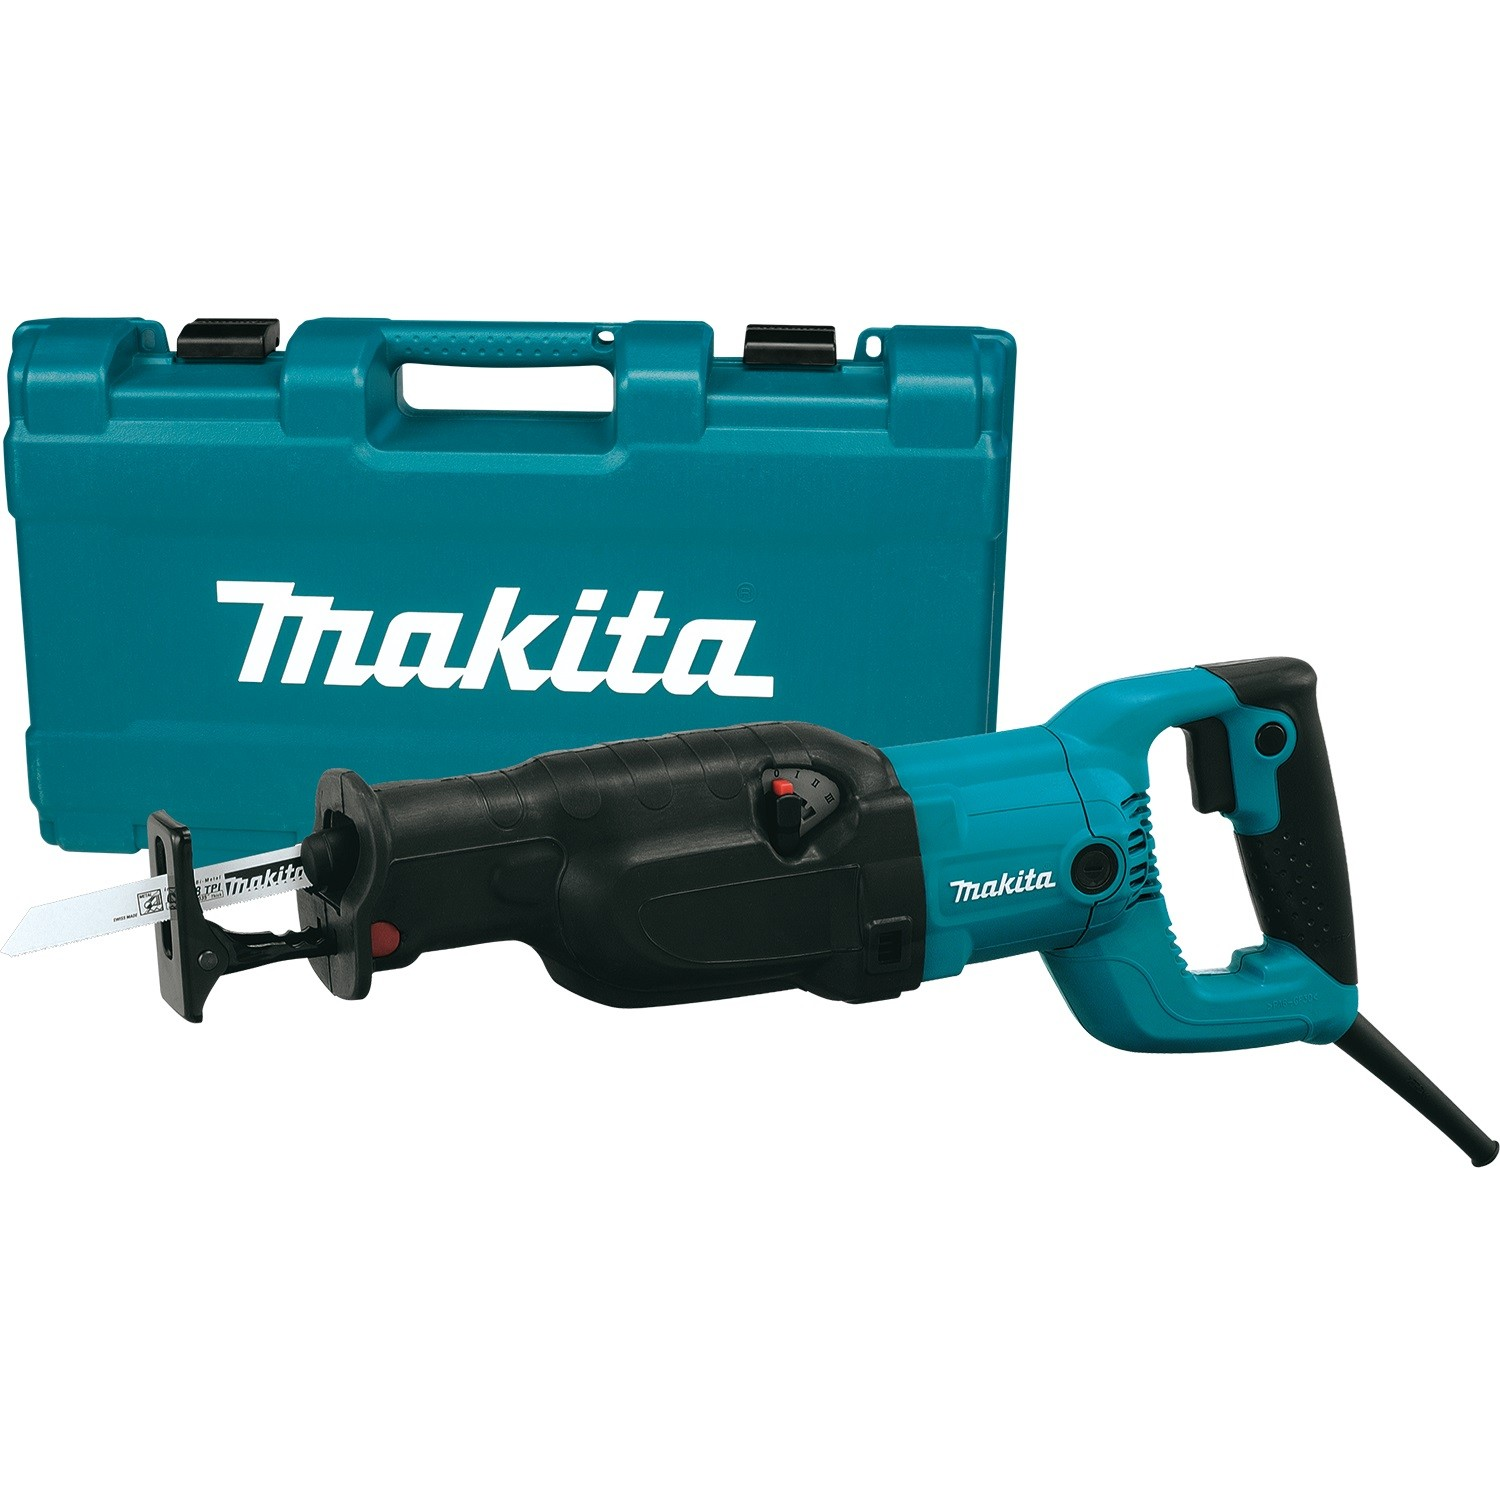 Makita JR3060T Orbital Action Reciprocating Saw in Carry Case